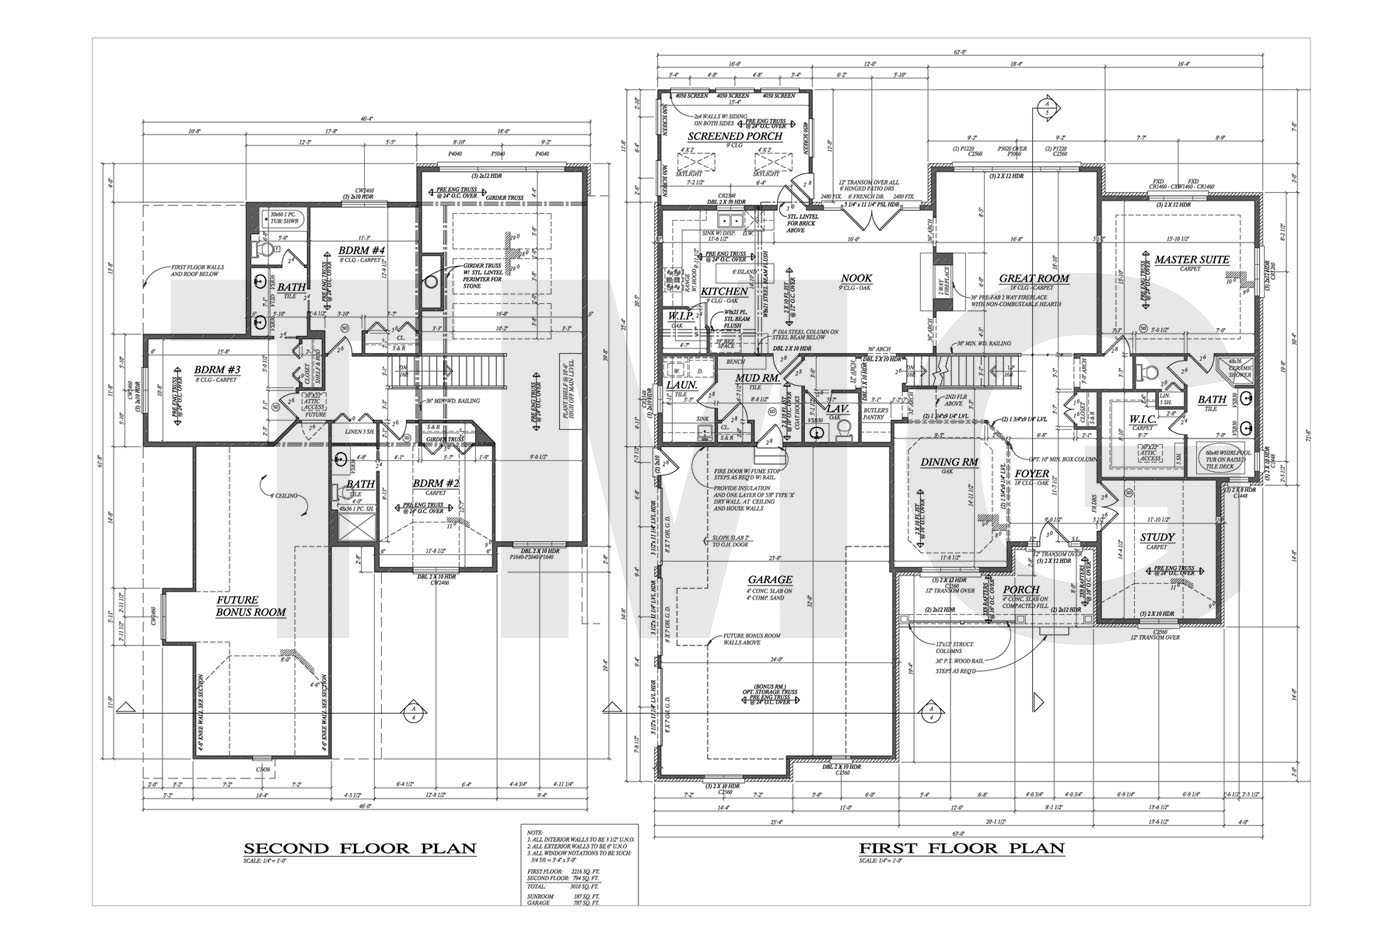 House plans drafting the magnum group tmg india for House plan drawing samples